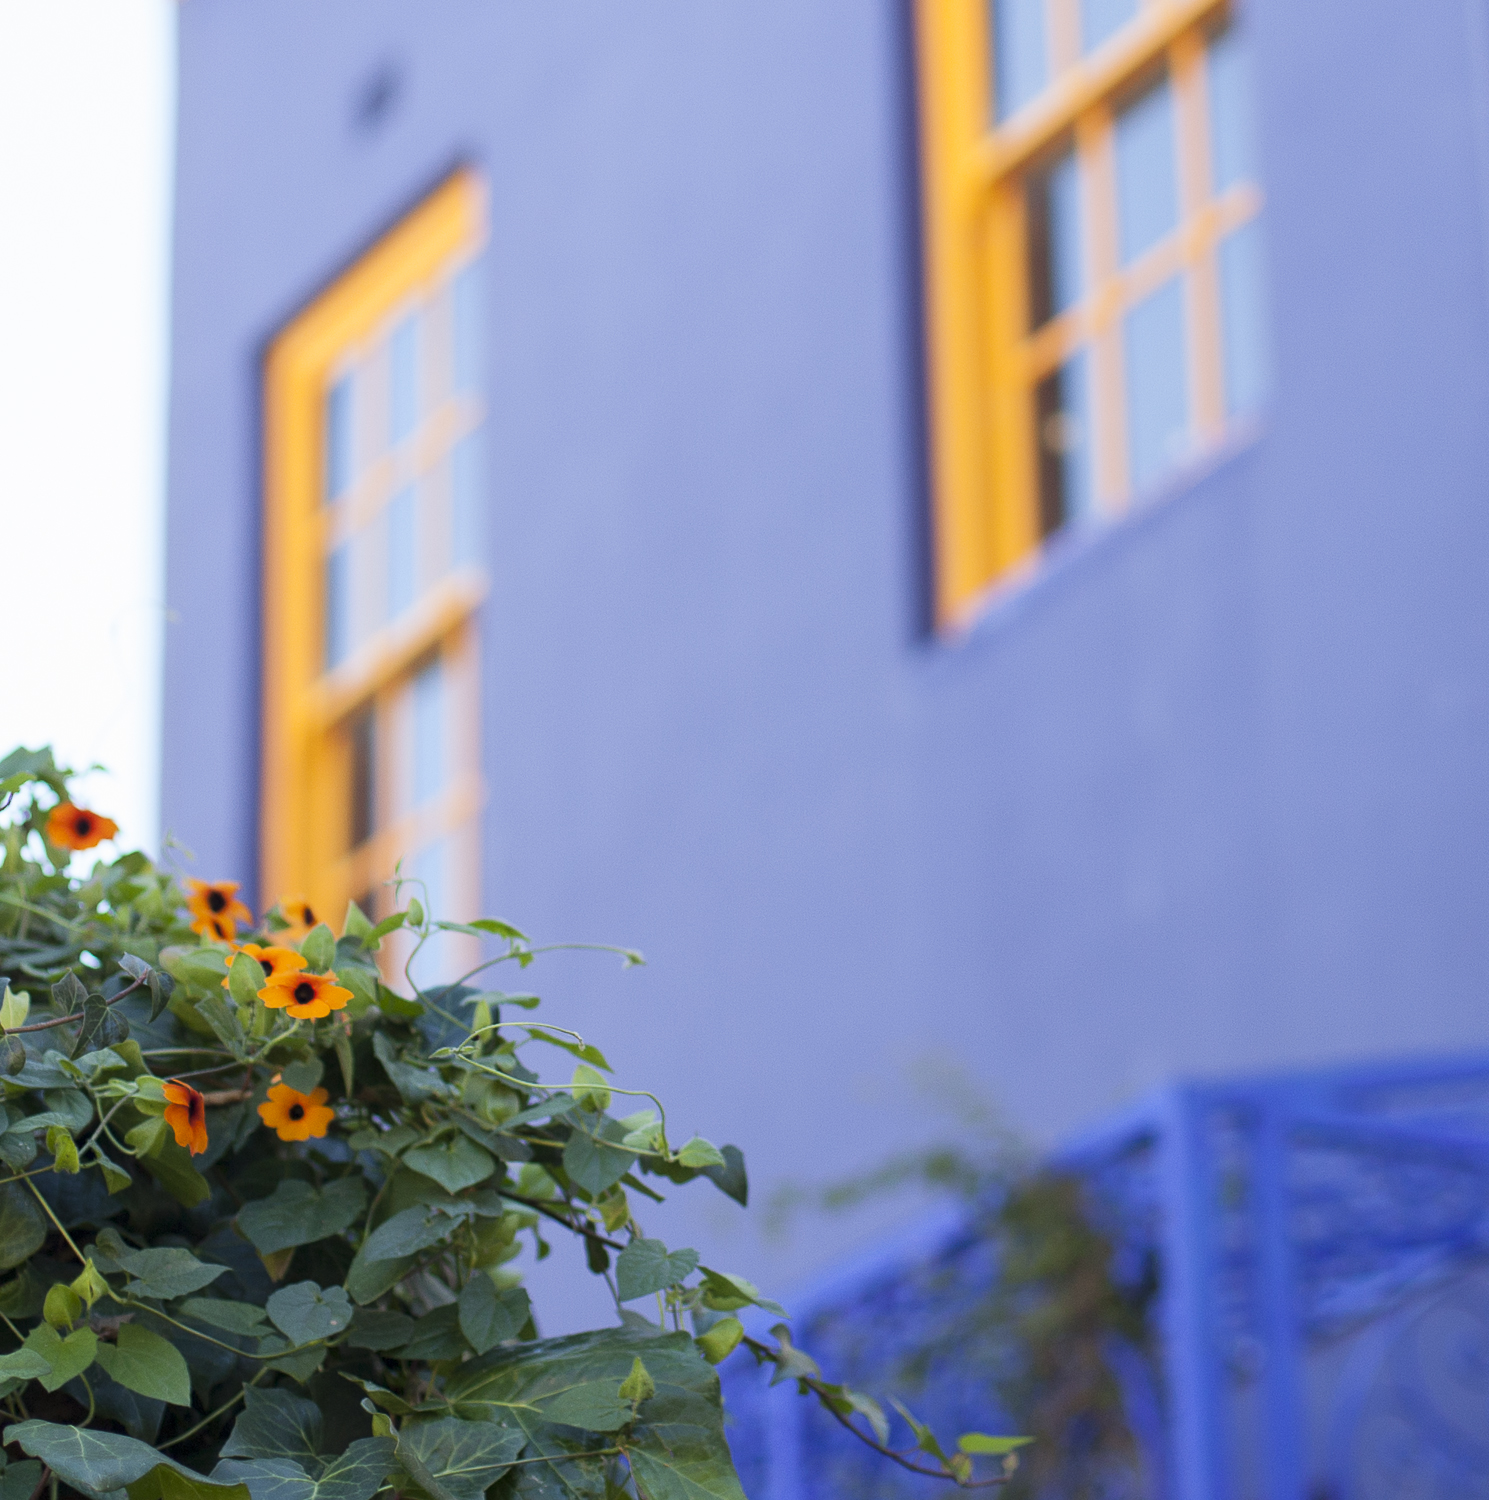 Window Frames & Flowers  © 24 Atlantic All rights reserved